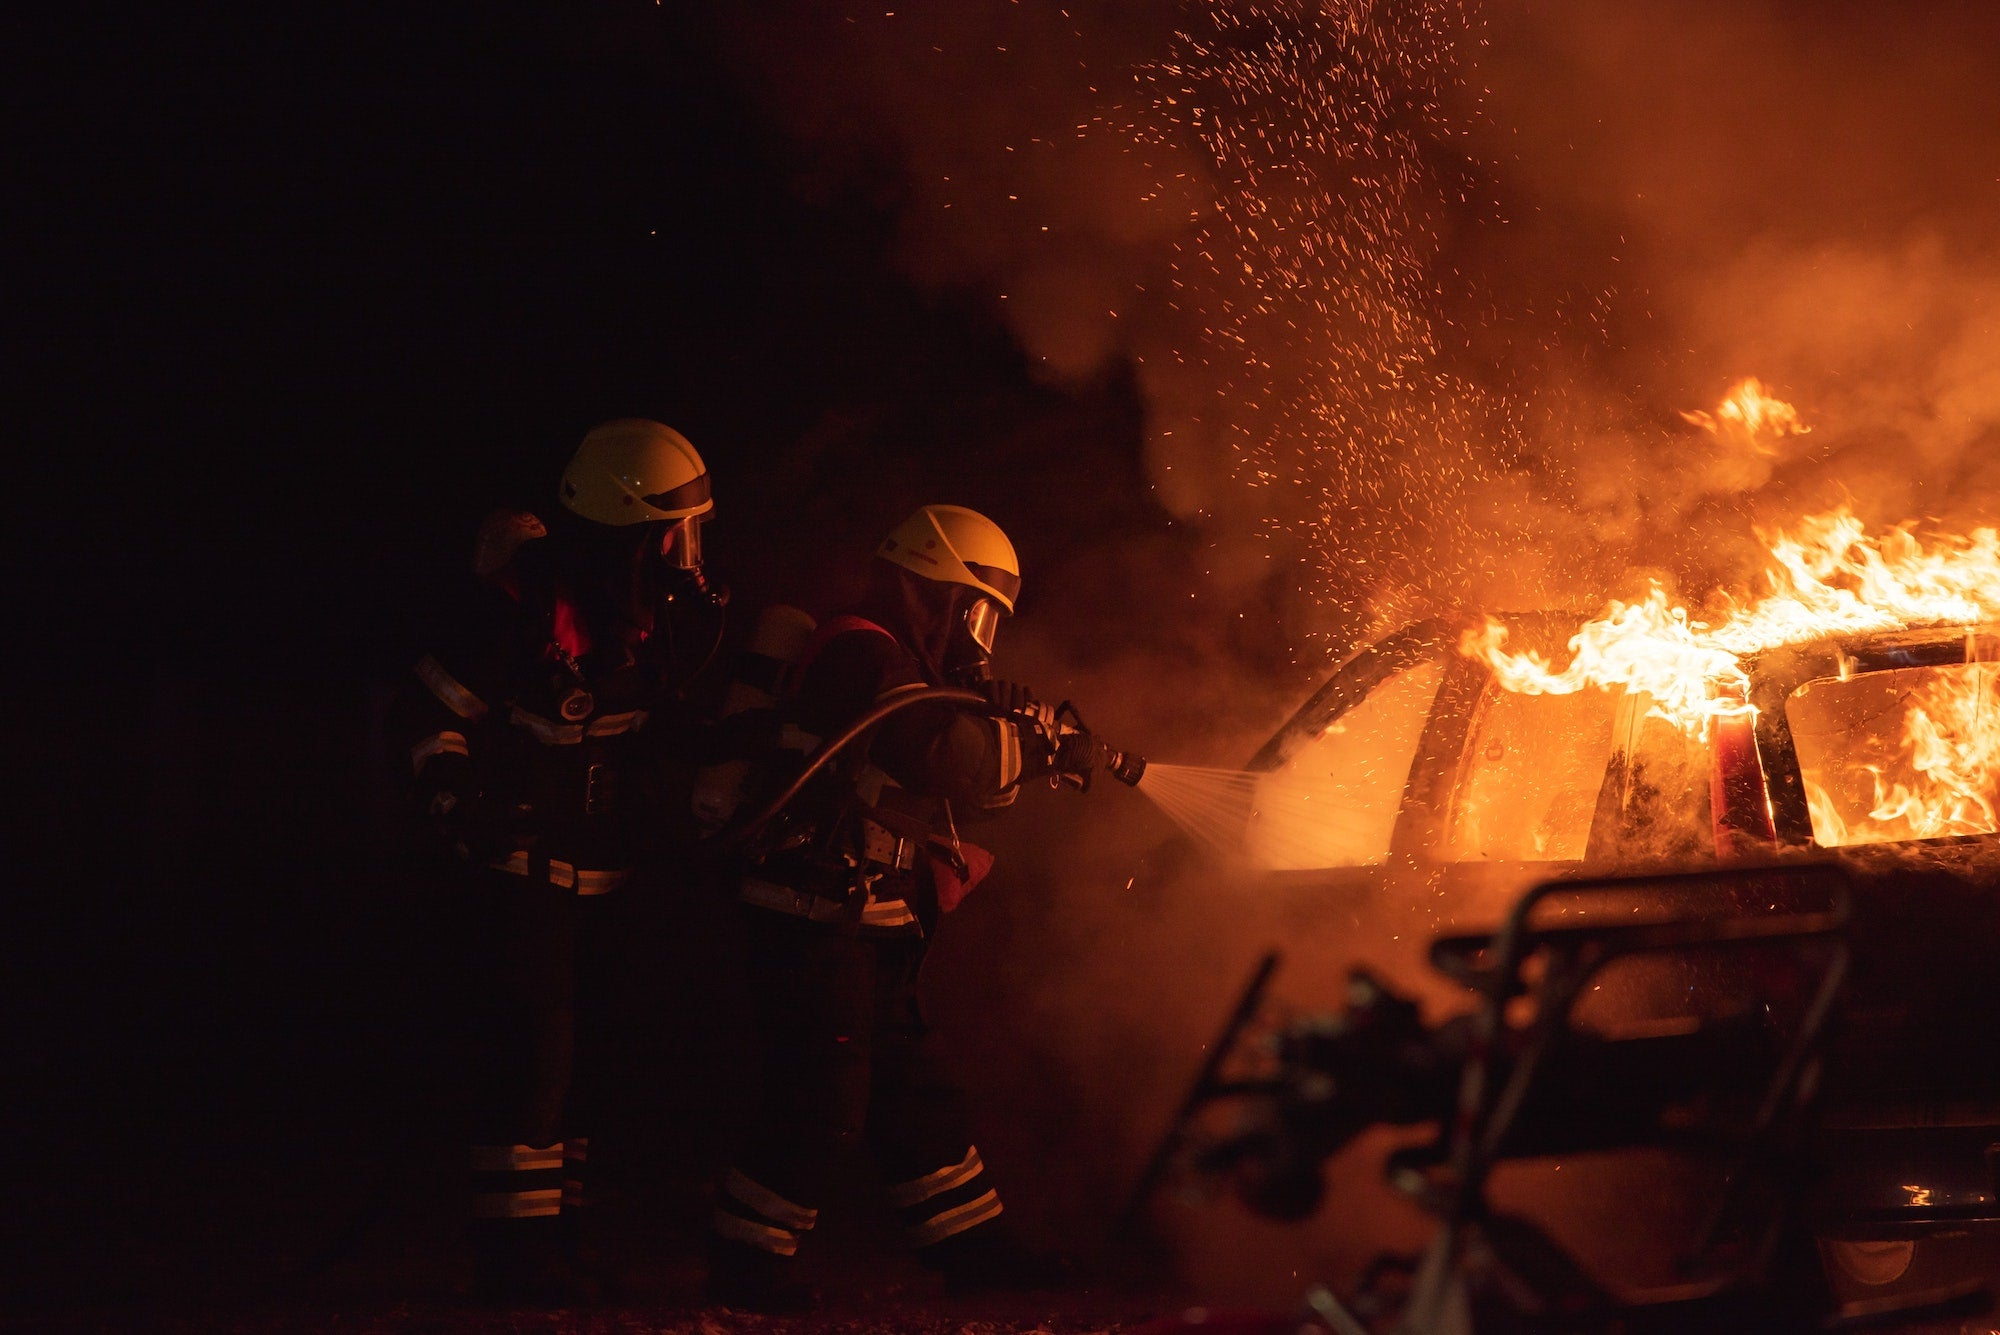 Electric vehicle fires are rare, but challenging to extinguish